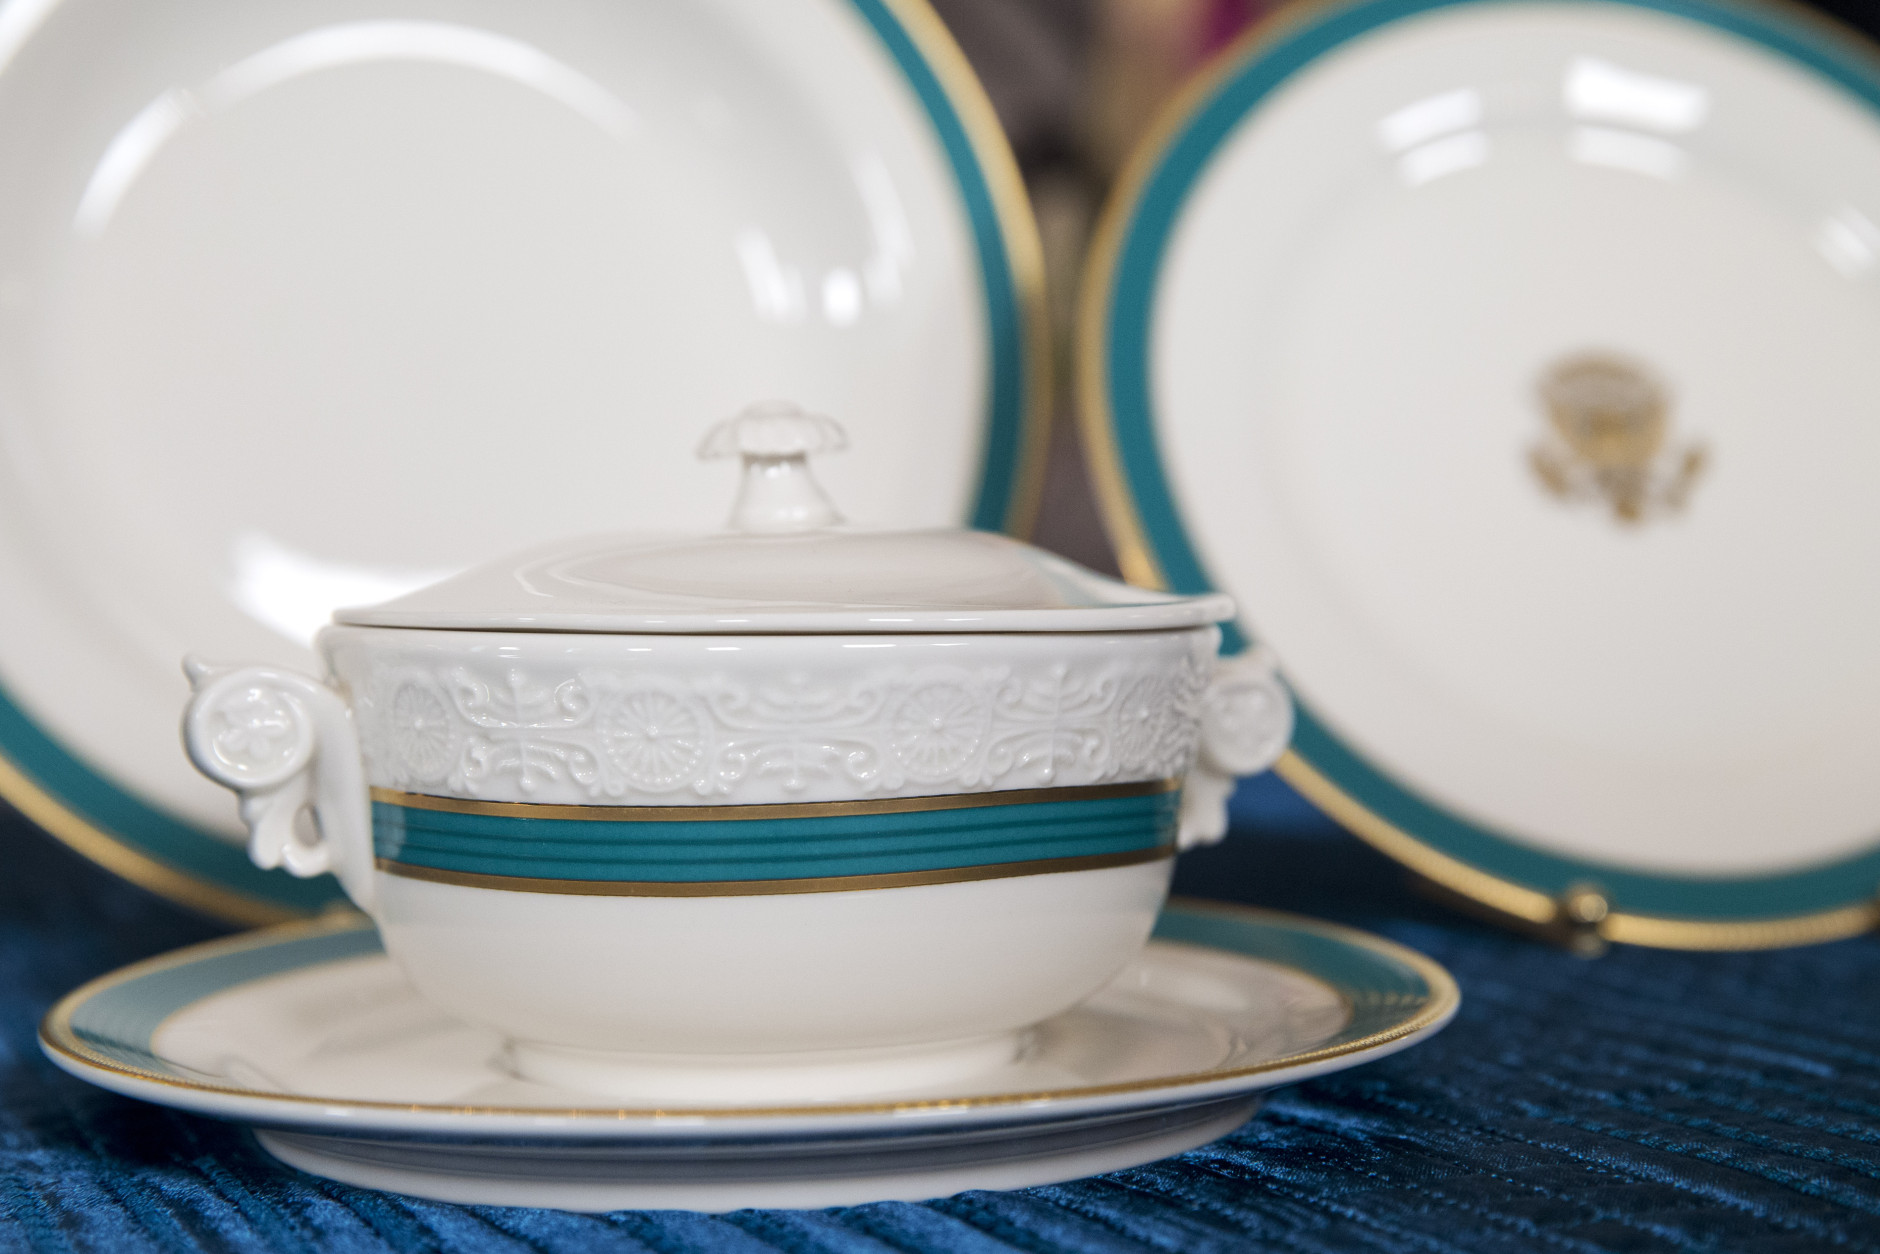 Obama Soup Turenn, Raleigh DeGeer Amyx, White house China